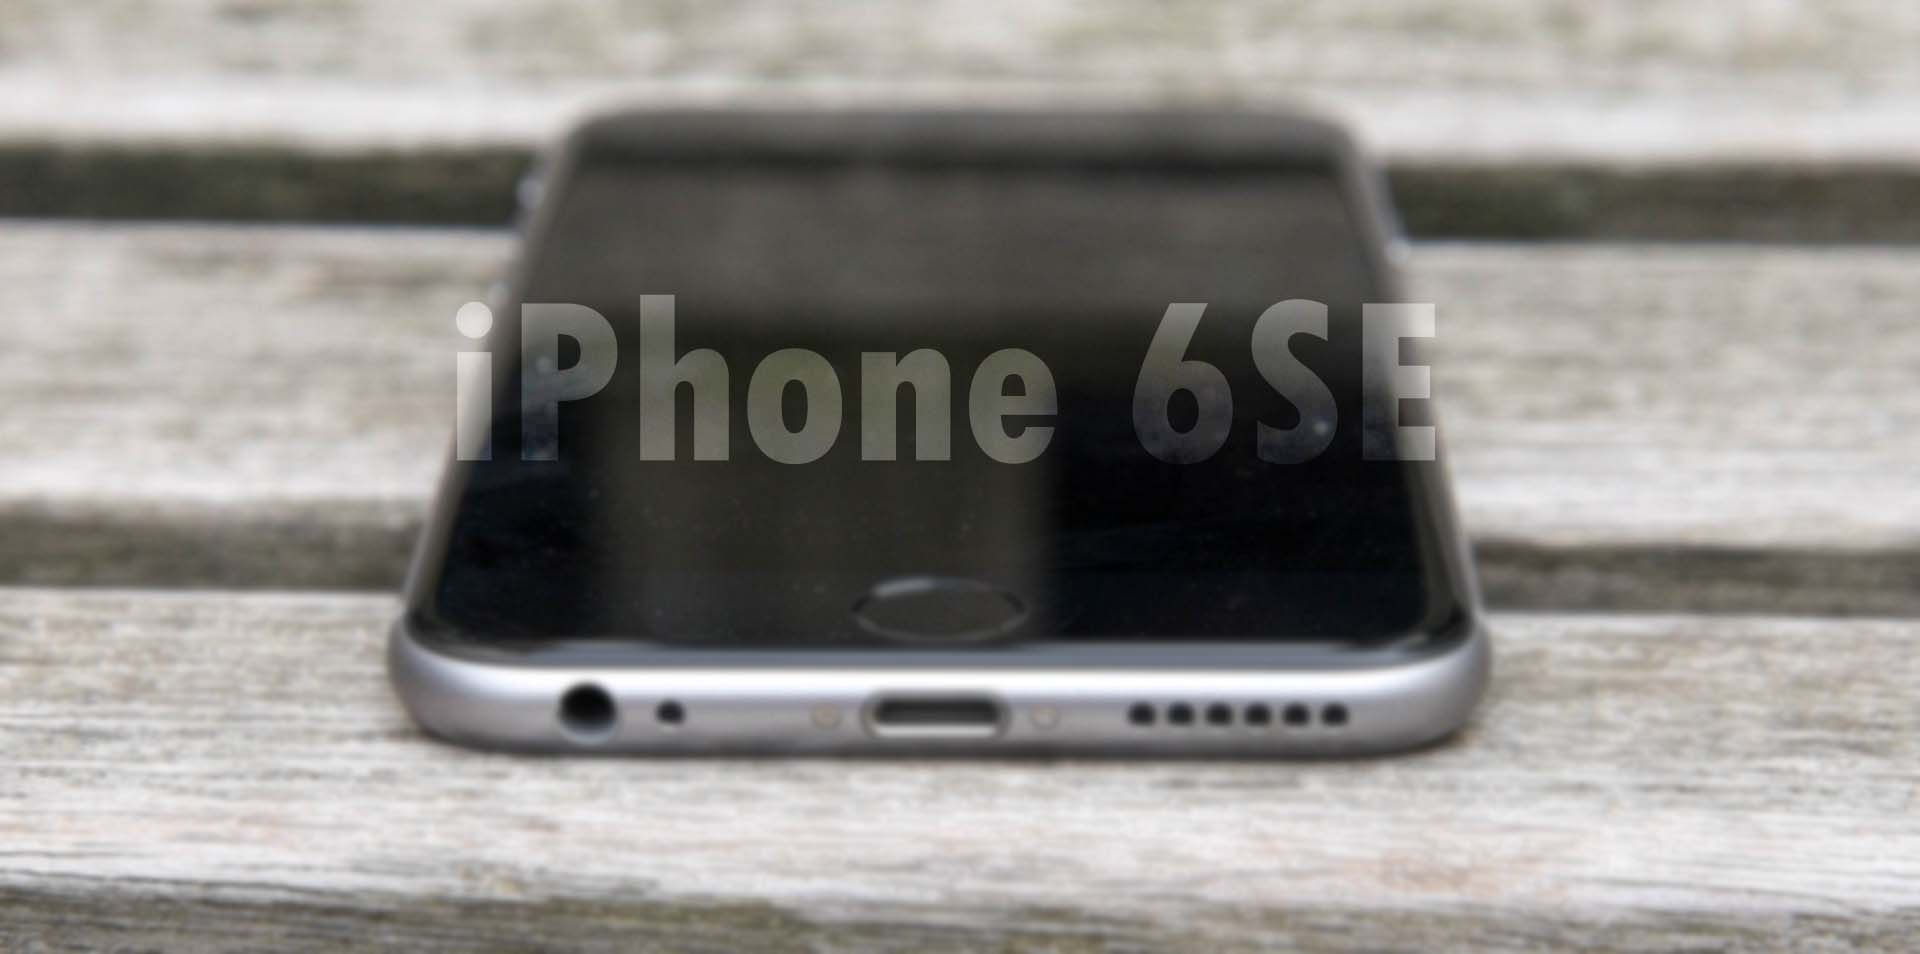 Upcoming Iphone Could Be Called Iphone 6se Apple Using